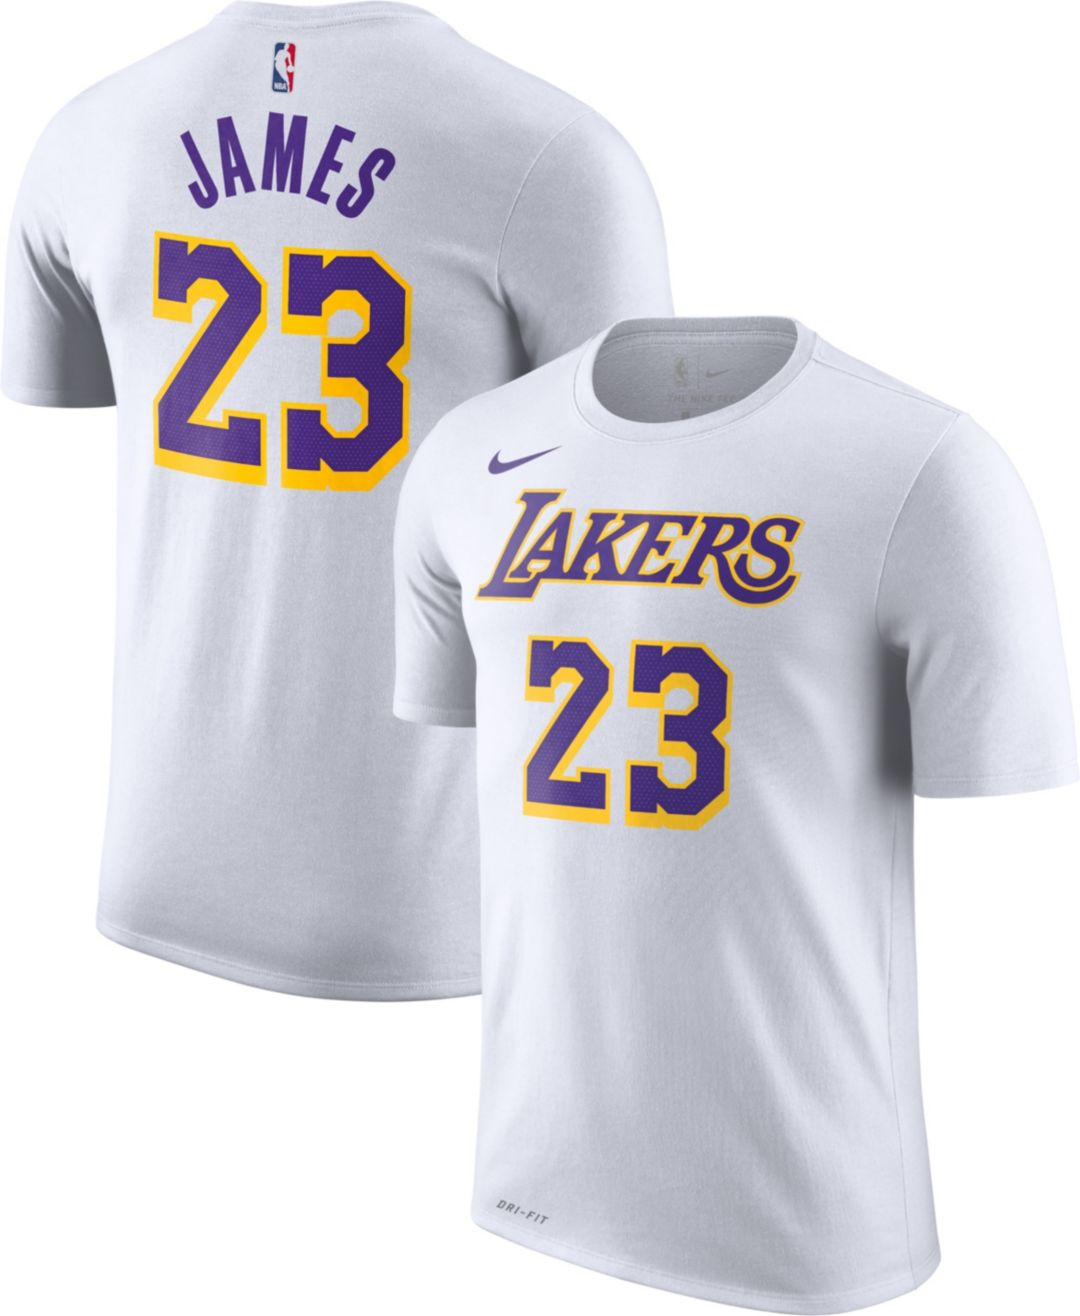 new styles 7ba65 d1ac0 Nike Youth Los Angeles Lakers LeBron James Dri-FIT White T-Shirt